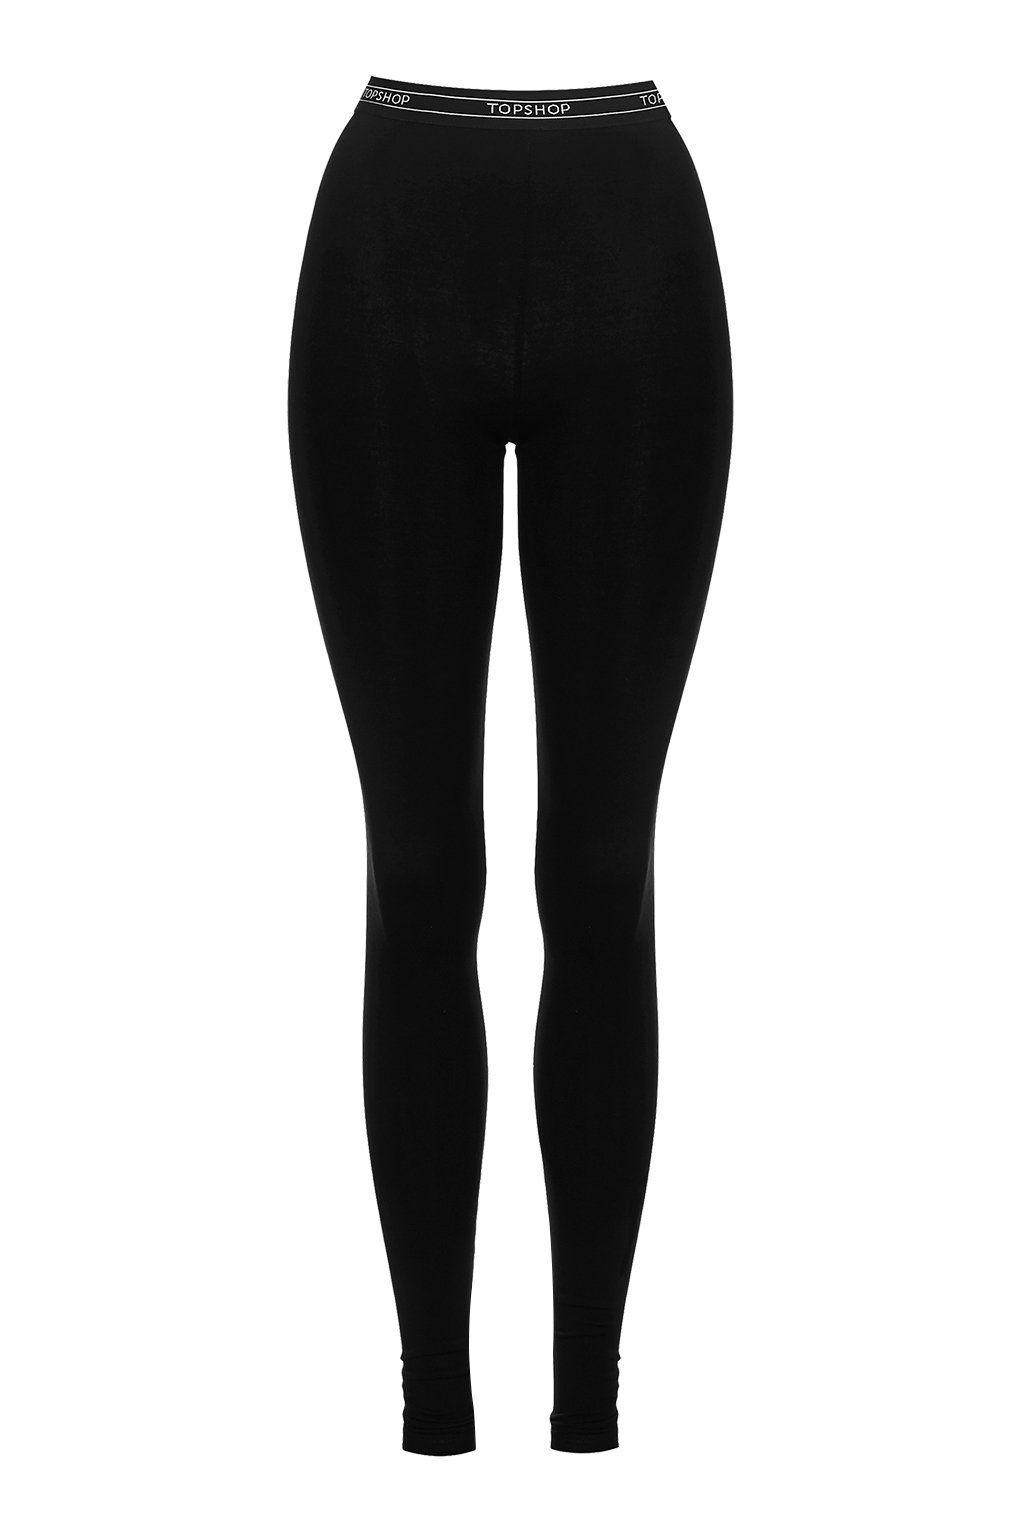 TOPSHOP Synthetic Tall Branded Leggings in Black